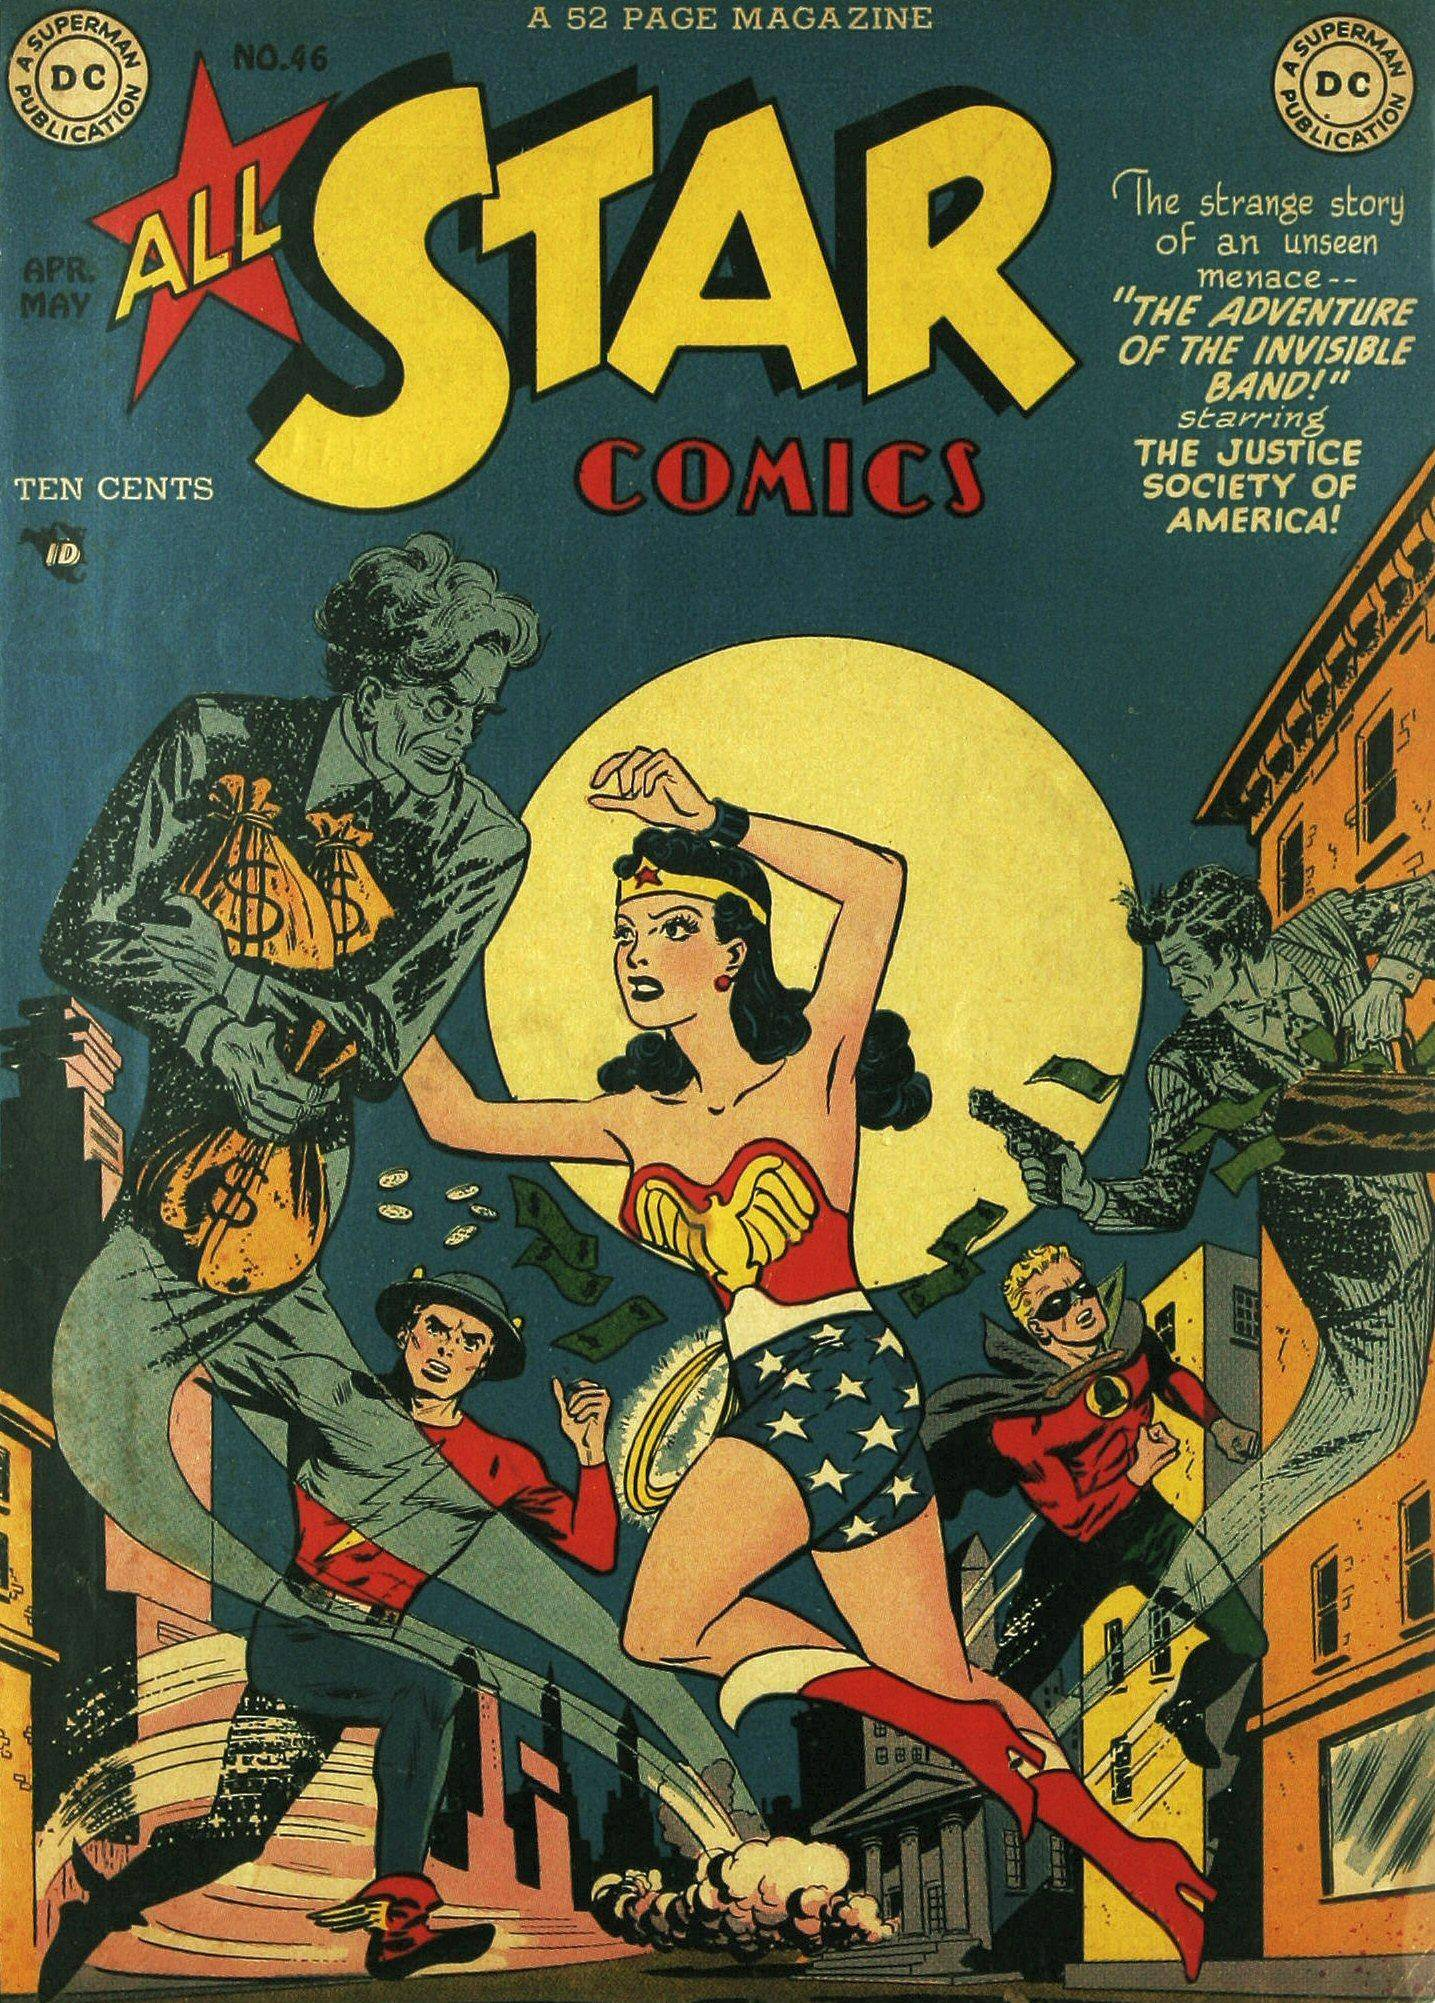 All-Star Comics 046 1949